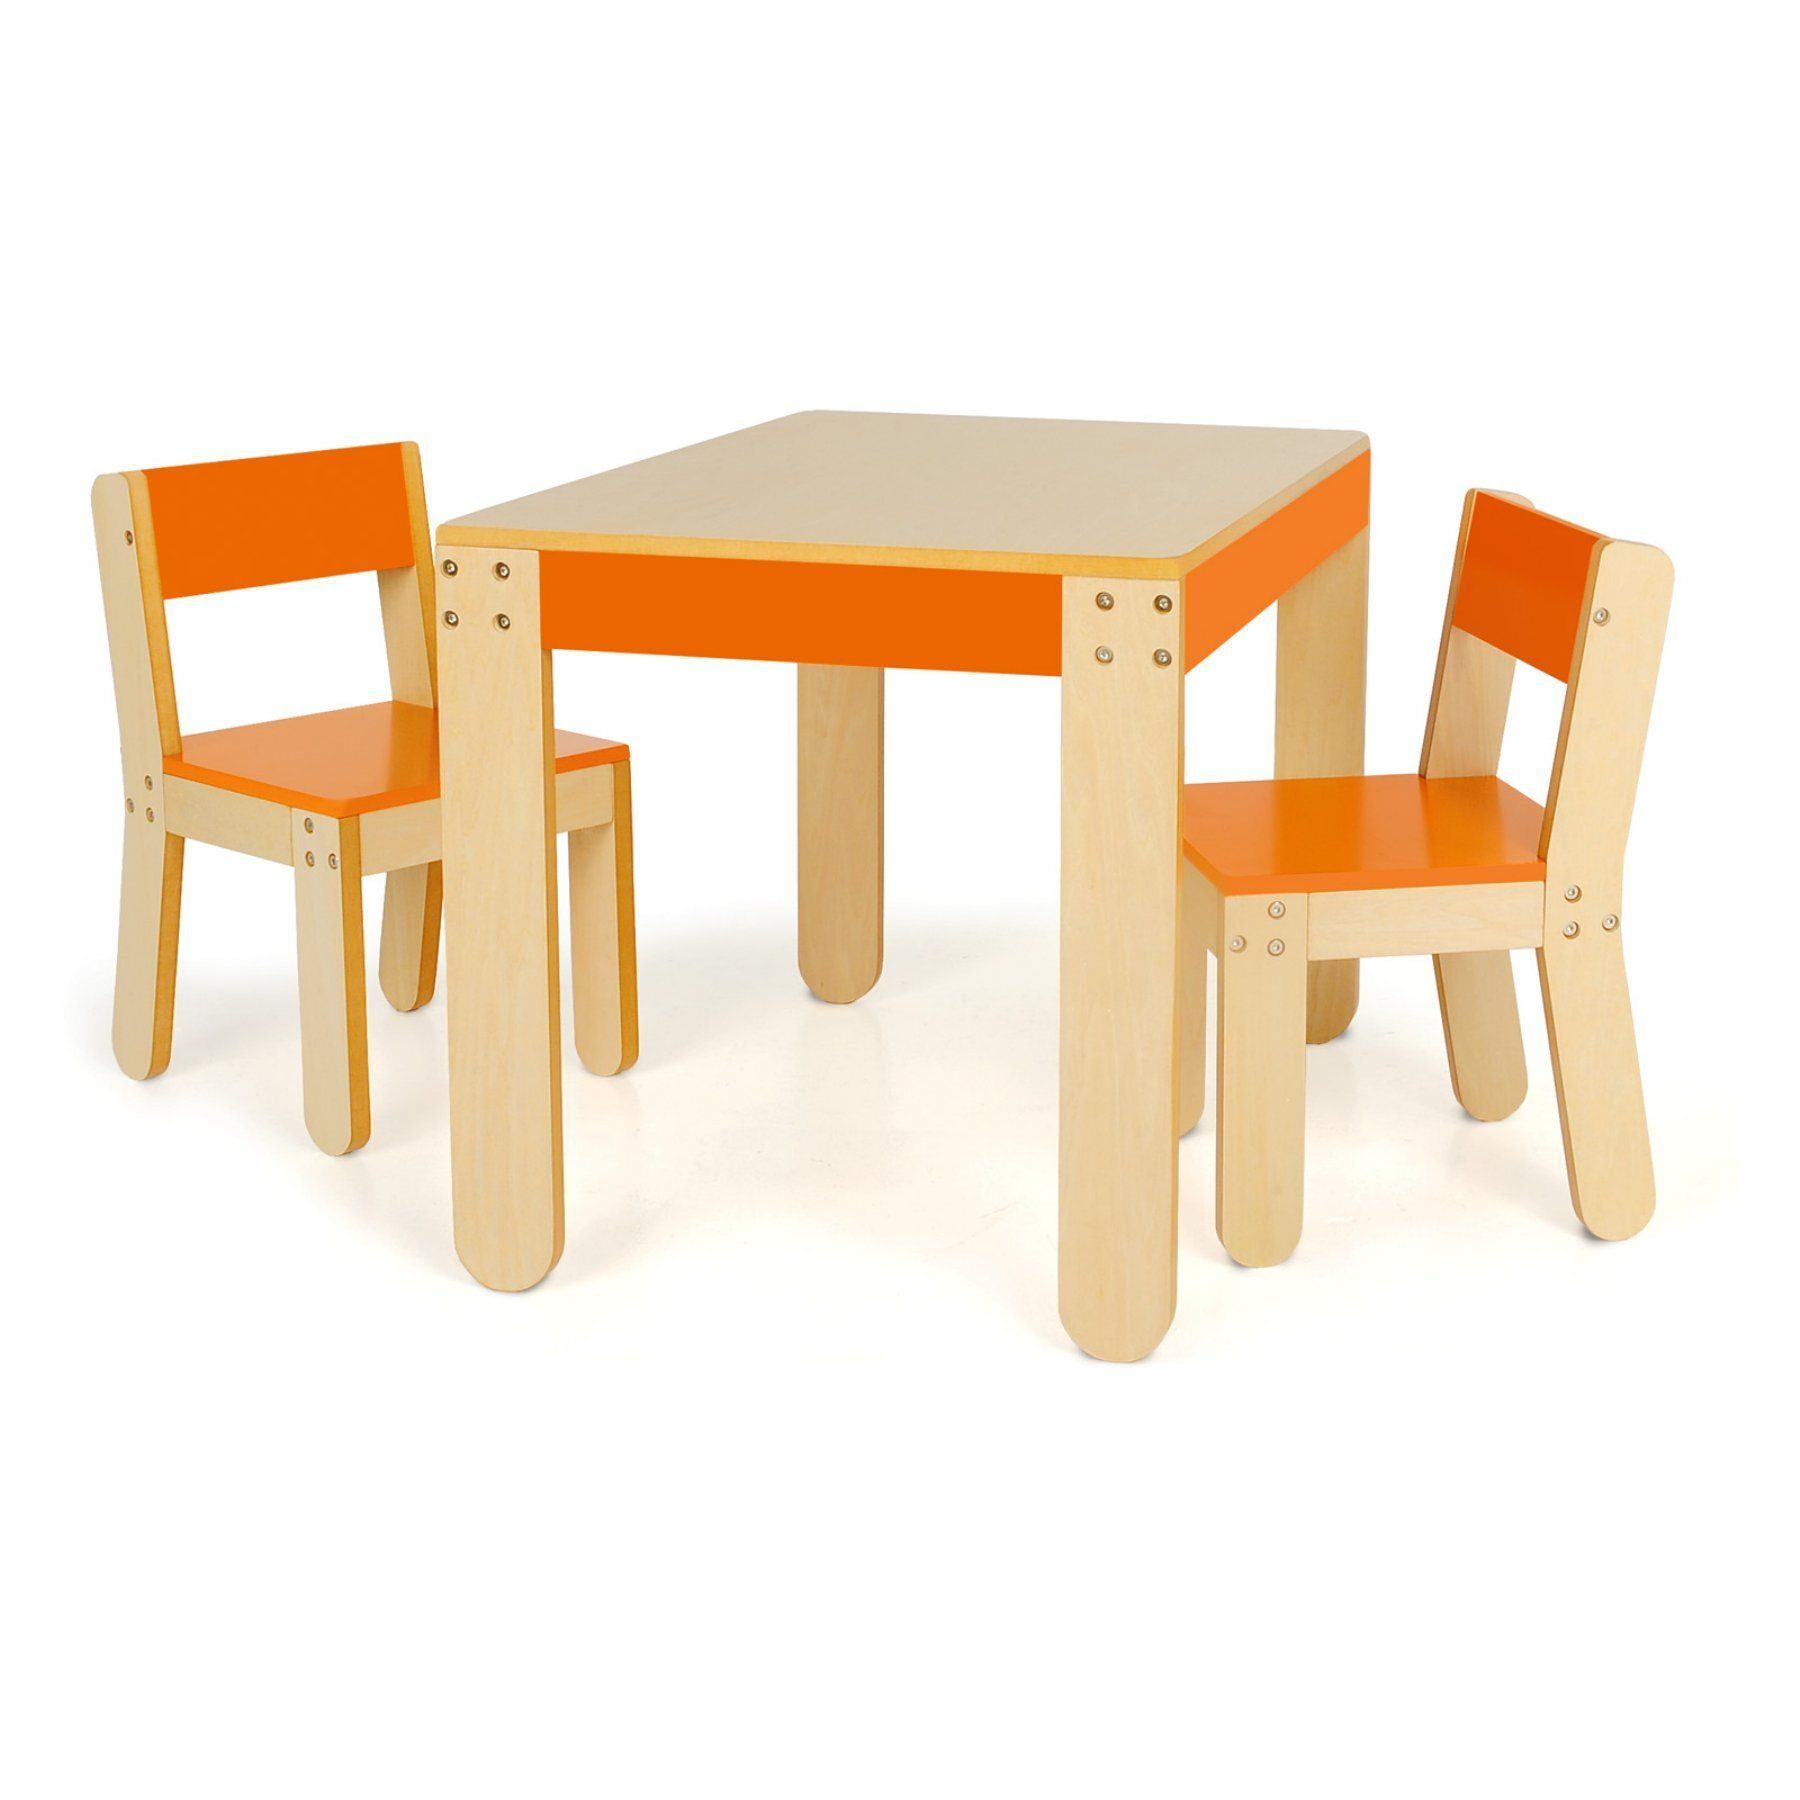 Pkolino Little One S Table And Chairs Pkfftcorg Table Chairs Kids Table Chairs Toddler Desk Chair